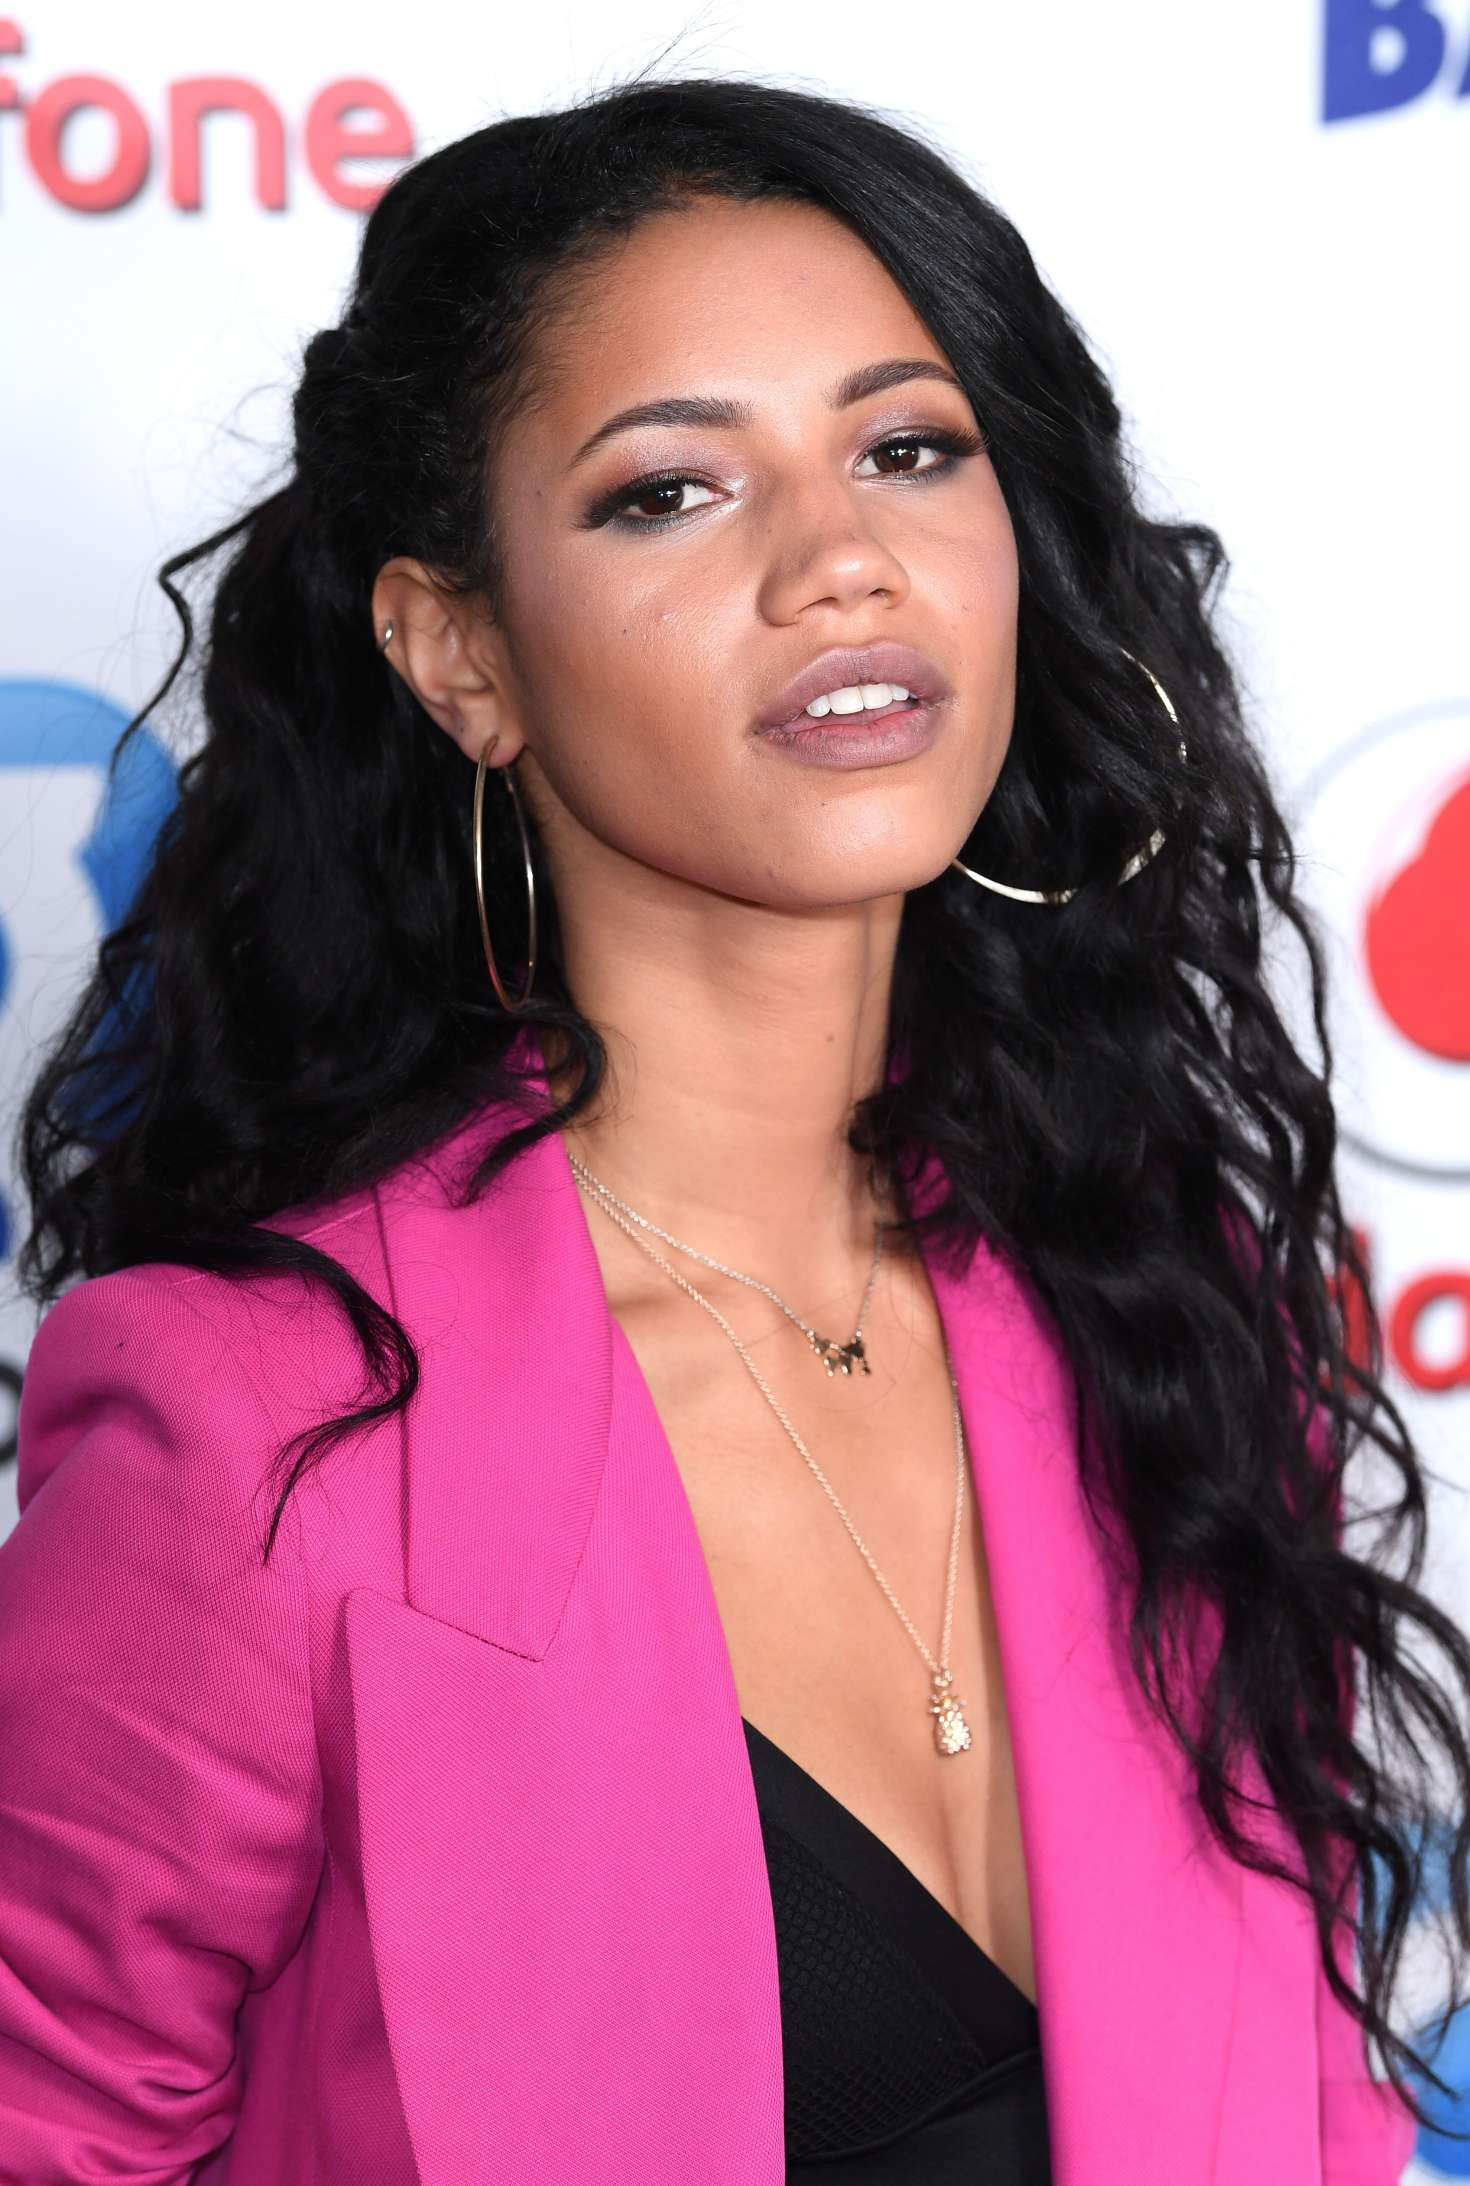 Pictures Vick Hope nudes (84 photo), Leaked